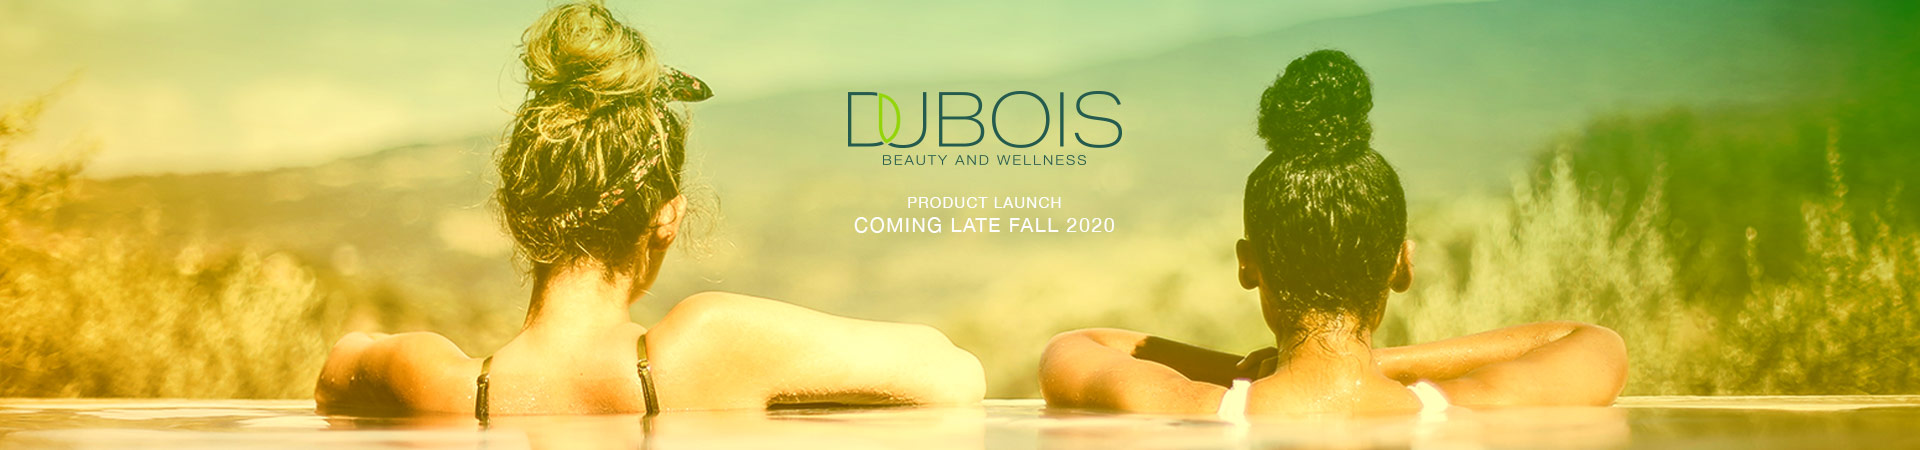 Dubois Beauty - Fall 2020 Launch Slider